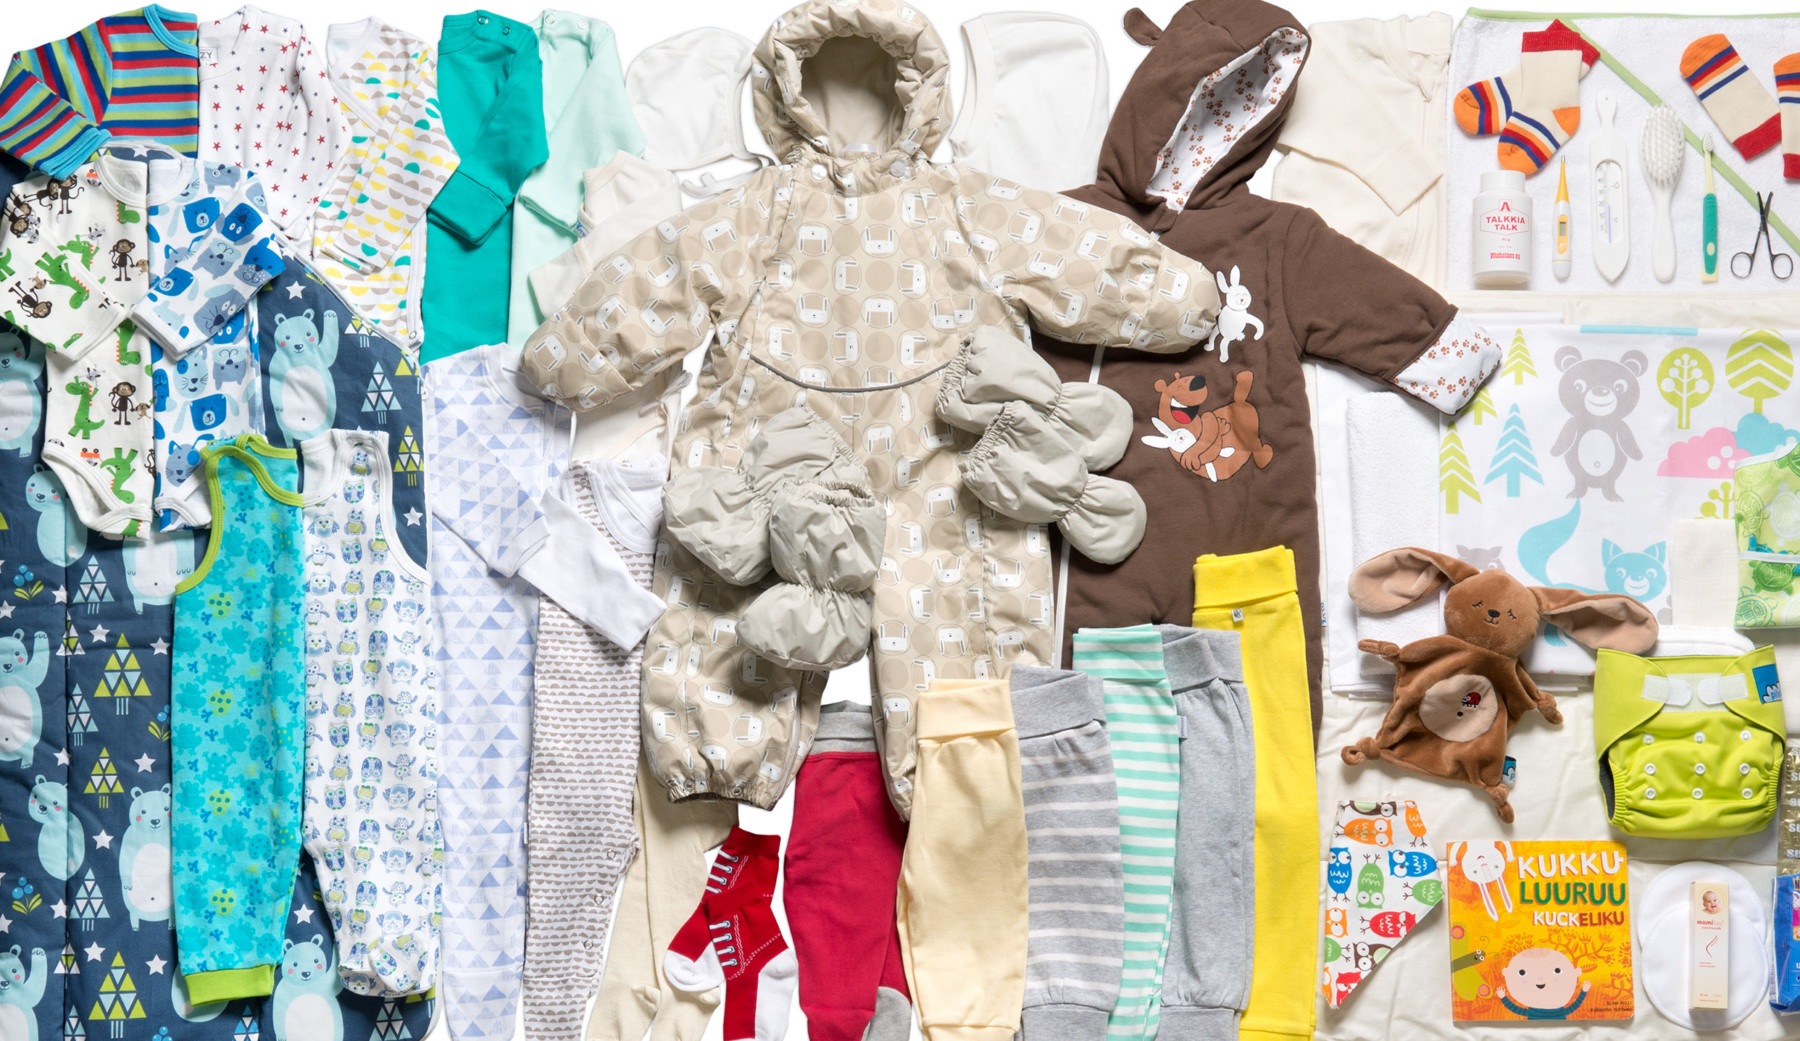 Contents of the Finnish maternity package, for example baby clothes and toys.,